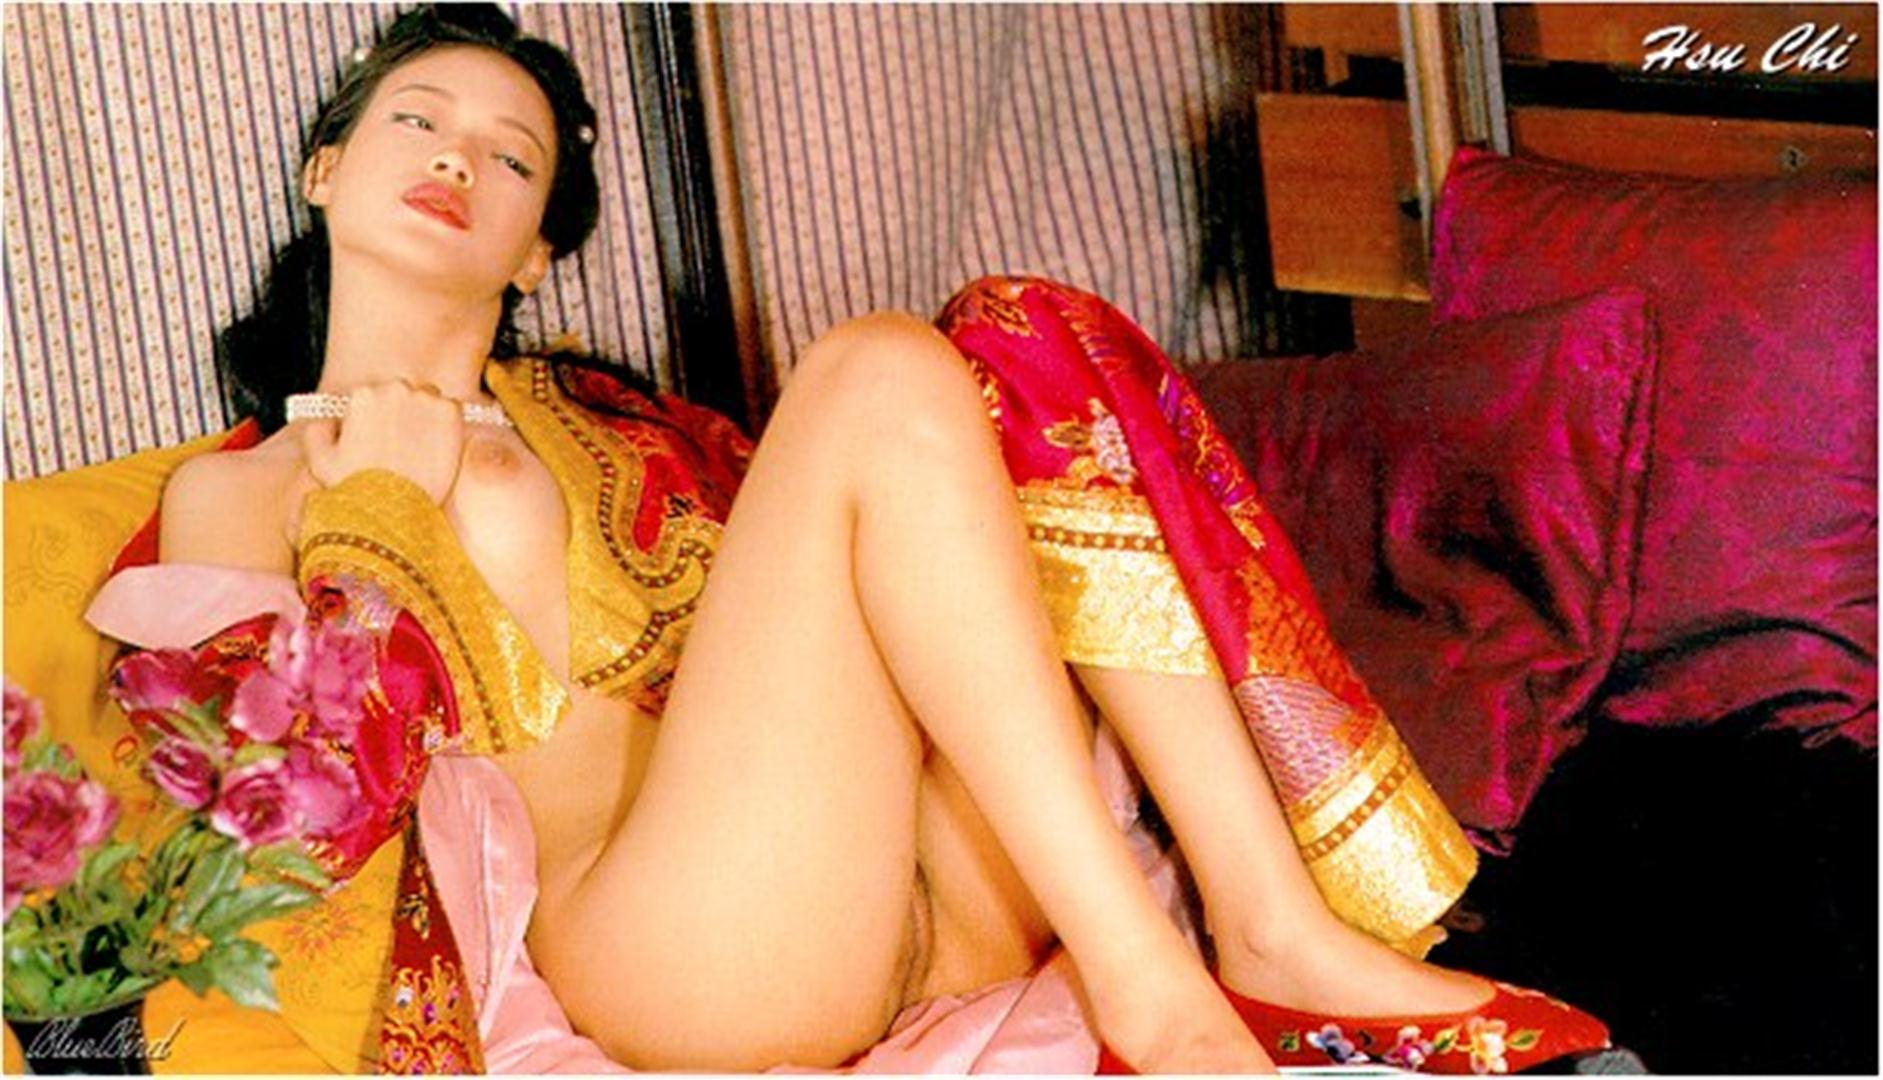 Shu Qi Nude Pictures Rating  76910-1537